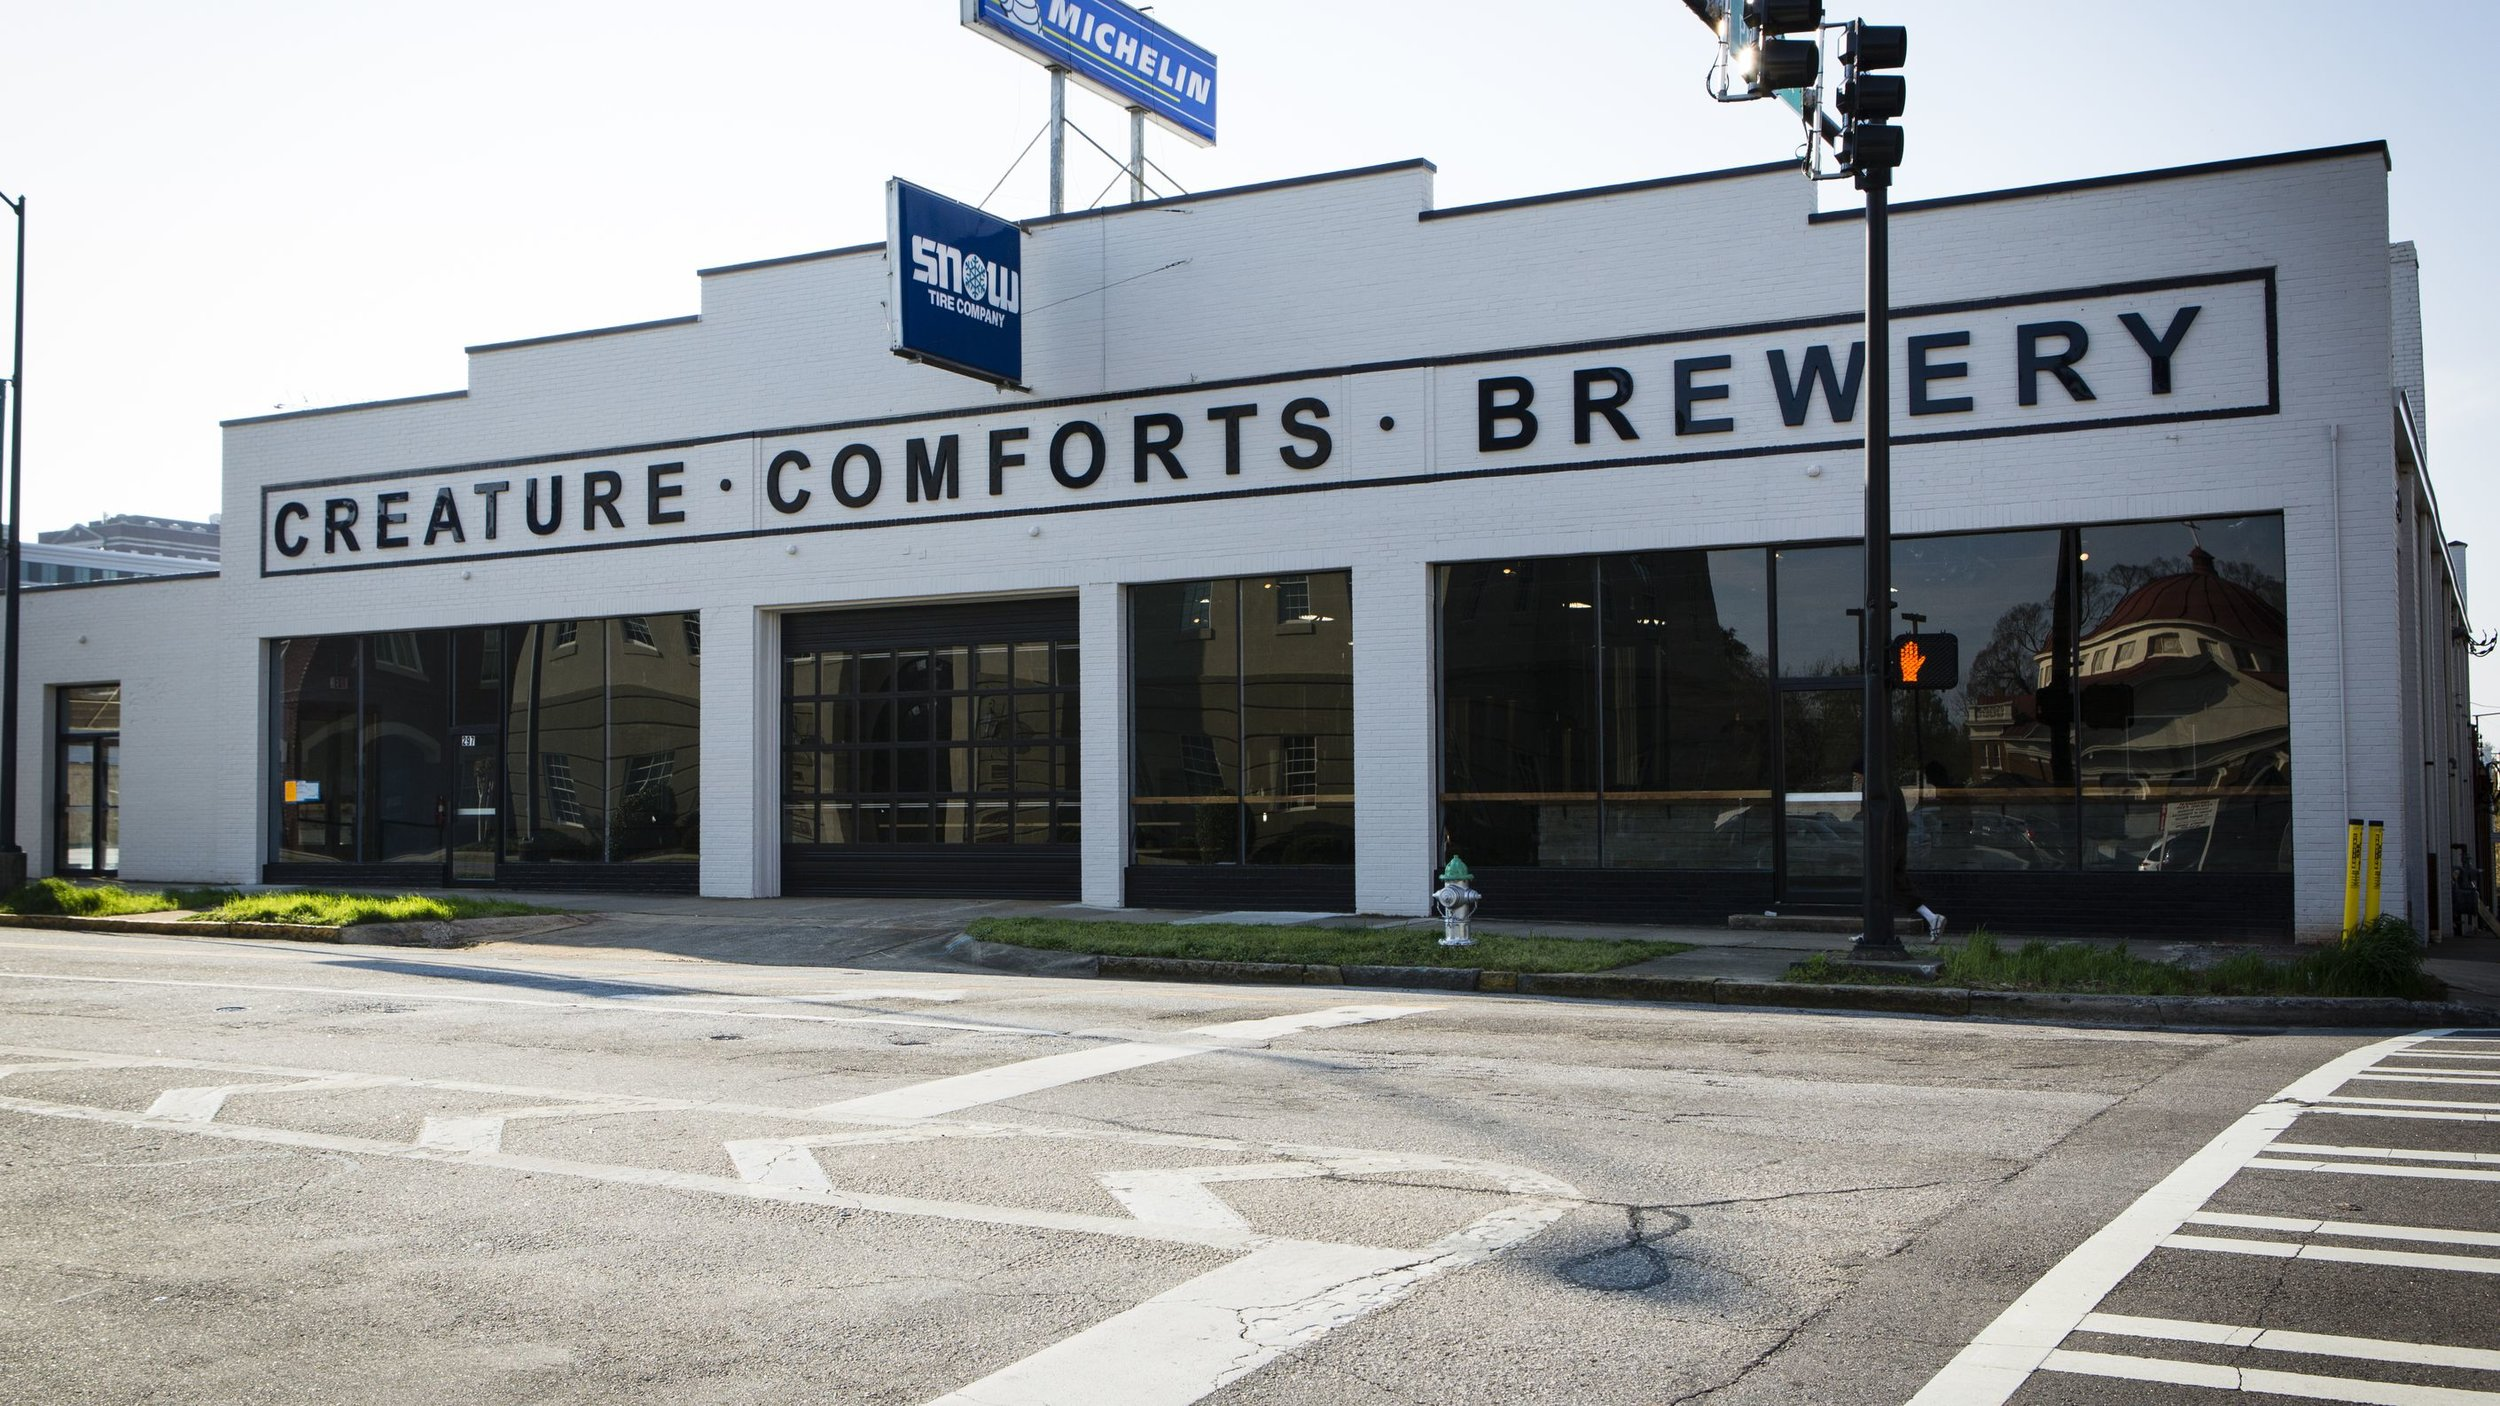 In Three Short Years, Creature Comforts Has Become Georgia's Hottest Brewery - Eater Atlanta | June 16, 2017